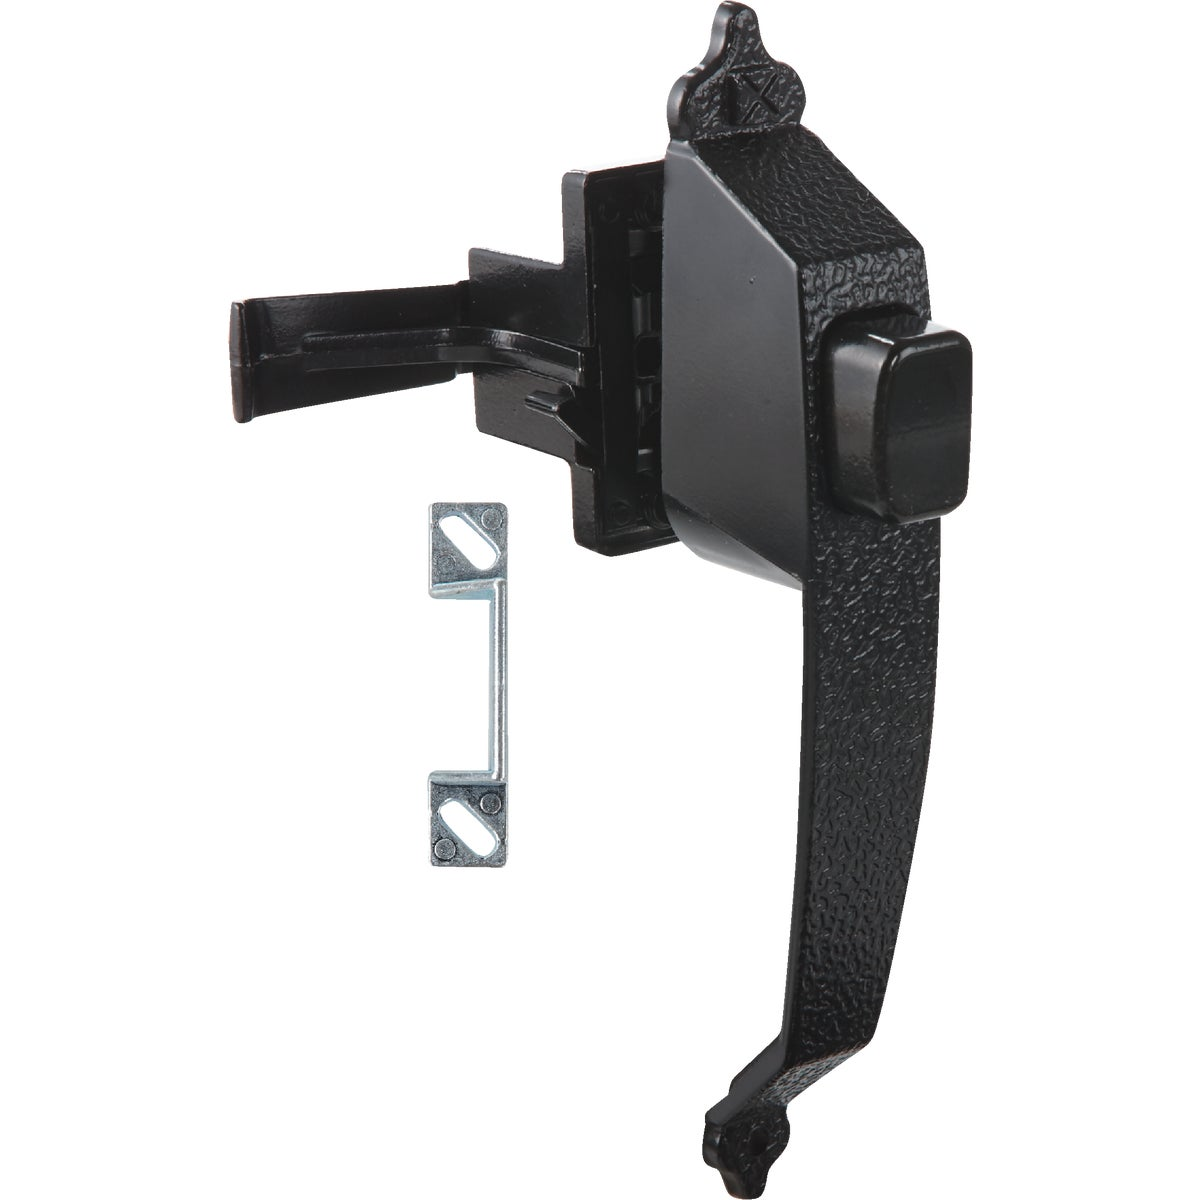 BLK COLNL PUSHBTN LATCH - N100023 by National Mfg Co